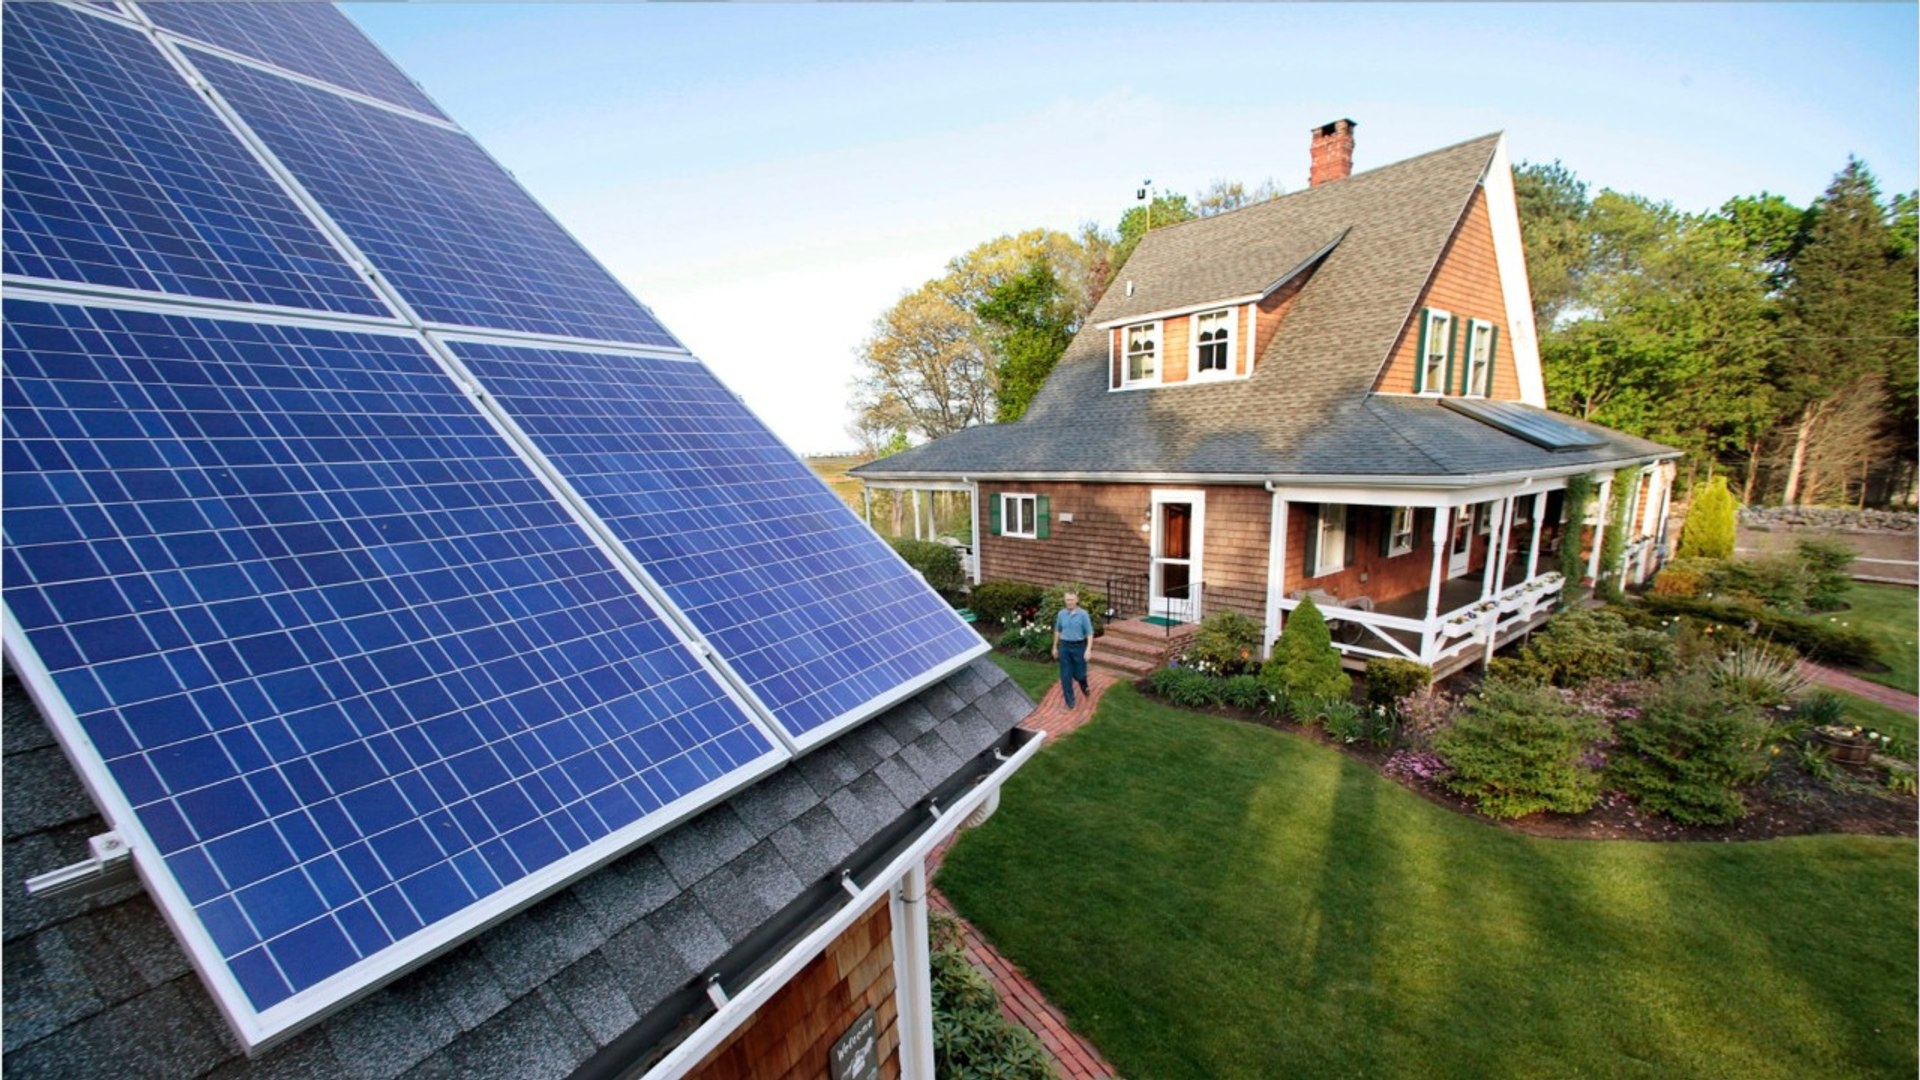 Your Home Could Be Powered By Solar Powered Batteries In The Near Future